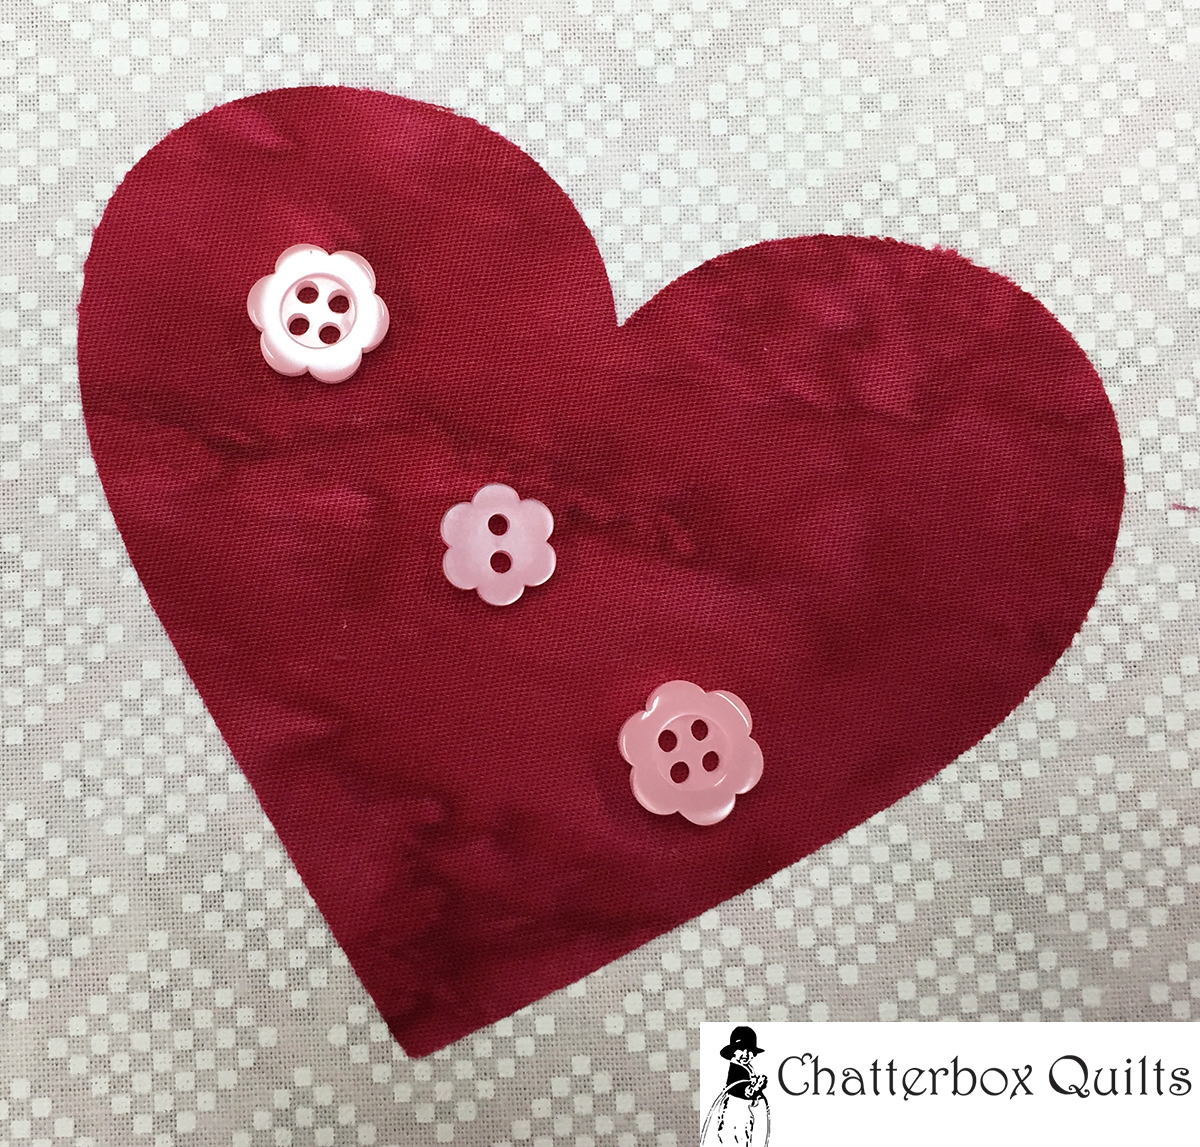 Heart #2 looks great with floral buttons in pink